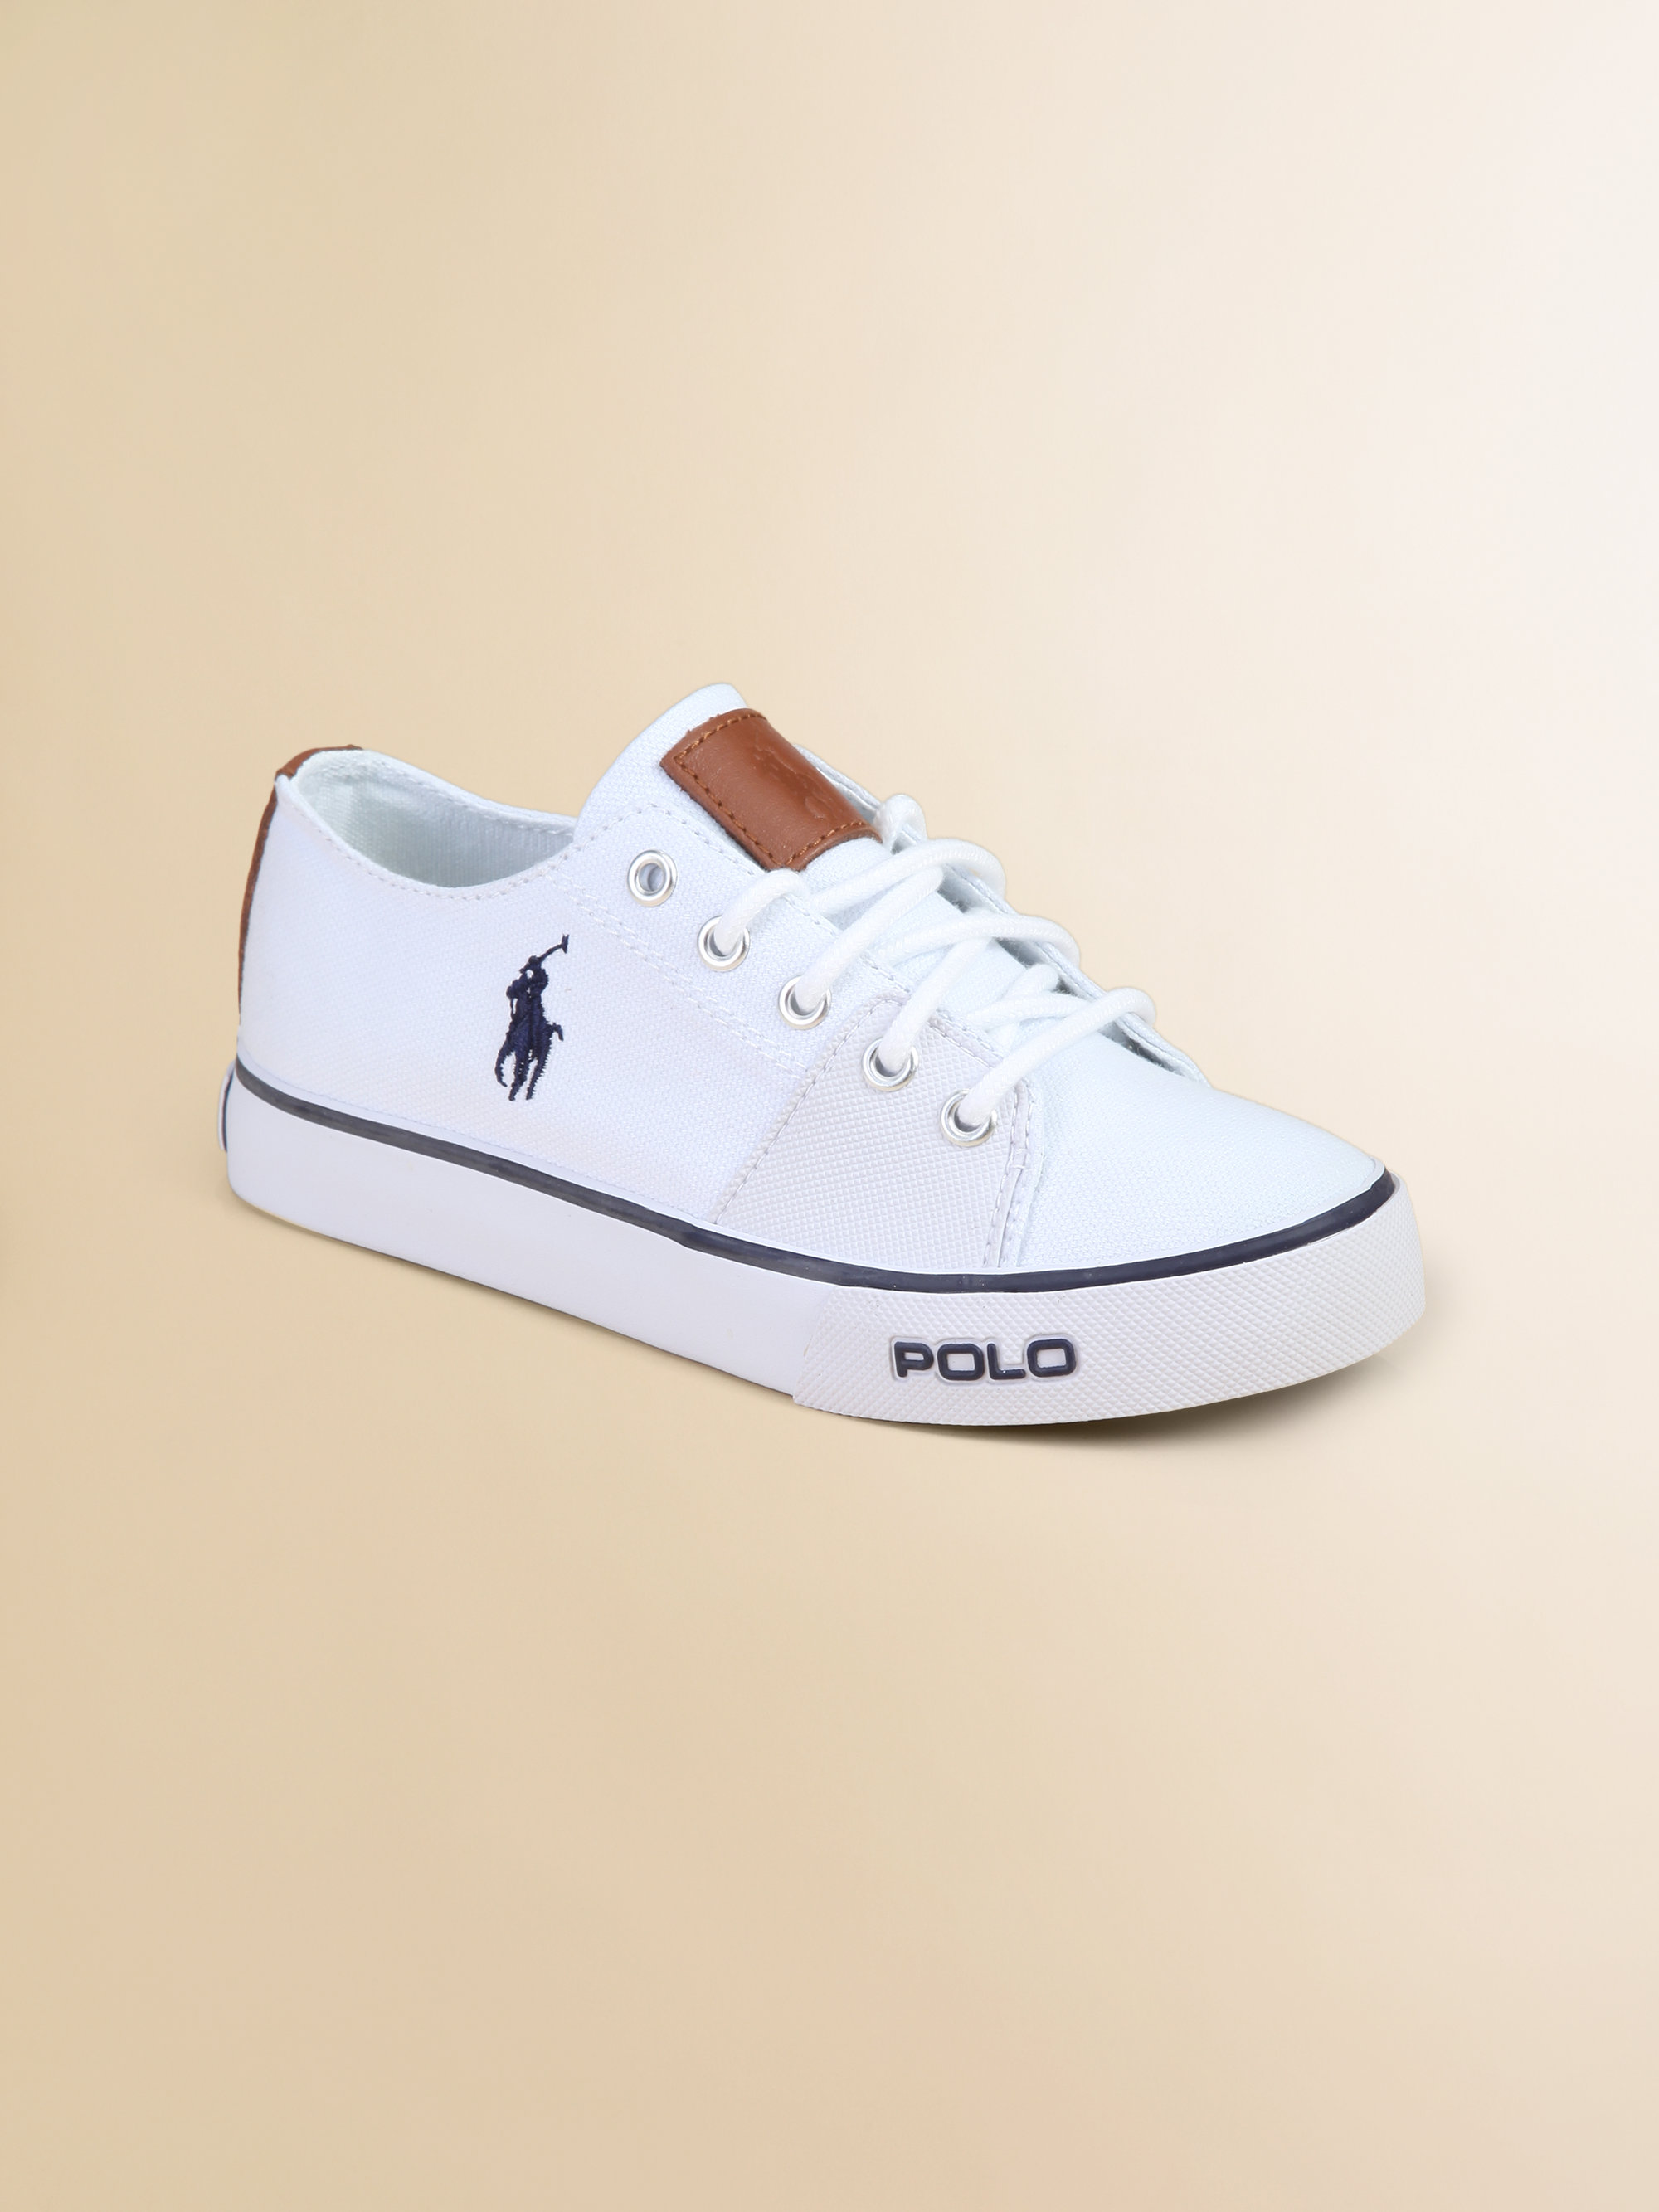 Find great deals on eBay for kids white canvas shoes. Shop with confidence.